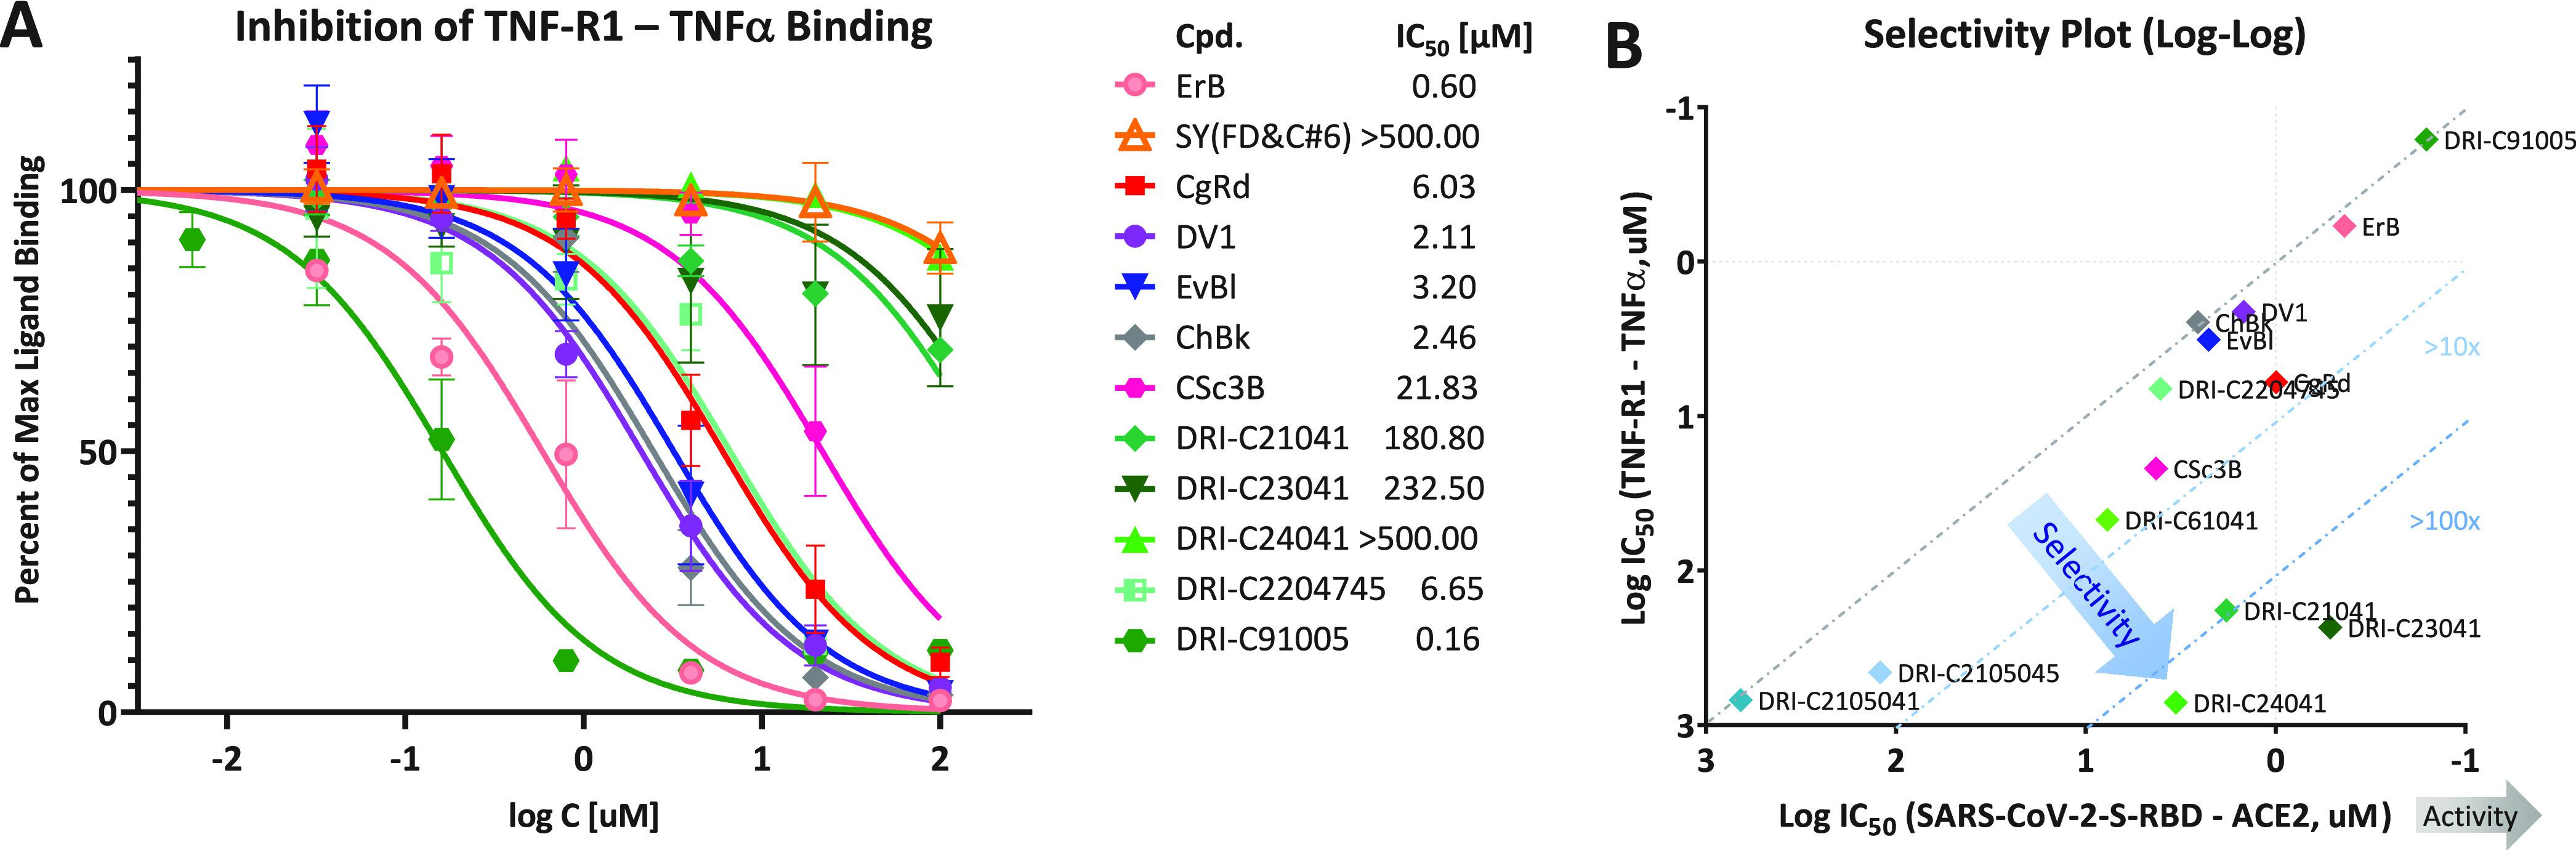 Concentration-dependent inhibition of TNF-R1–TNFα binding by compounds of the present study and corresponding selectivity plot. (A) Concentration–response curves obtained for the inhibition of this important TNF superfamily PPI in similar cell-free ELISA-type assay as used for the CoV-S–ACE2 PPIs to assess selectivity. Data and fit as before ( Figure 3 ). As the IC 50 values indicate, some of the DRI-C compounds showed more than 100-fold selectivity in inhibiting the CoV-S PPI vs the TNF PPI. (B) Selectivity plot comparing inhibitory activity (as quantified by log IC 50 ) against the TNF-R1–TNF-α interaction with that against the desired PPI target (SARS-CoV-2-S-RBD–hACE2). Active and selective compounds are clustered in the lower right corner as highlighted by the trend-indicating arrows.